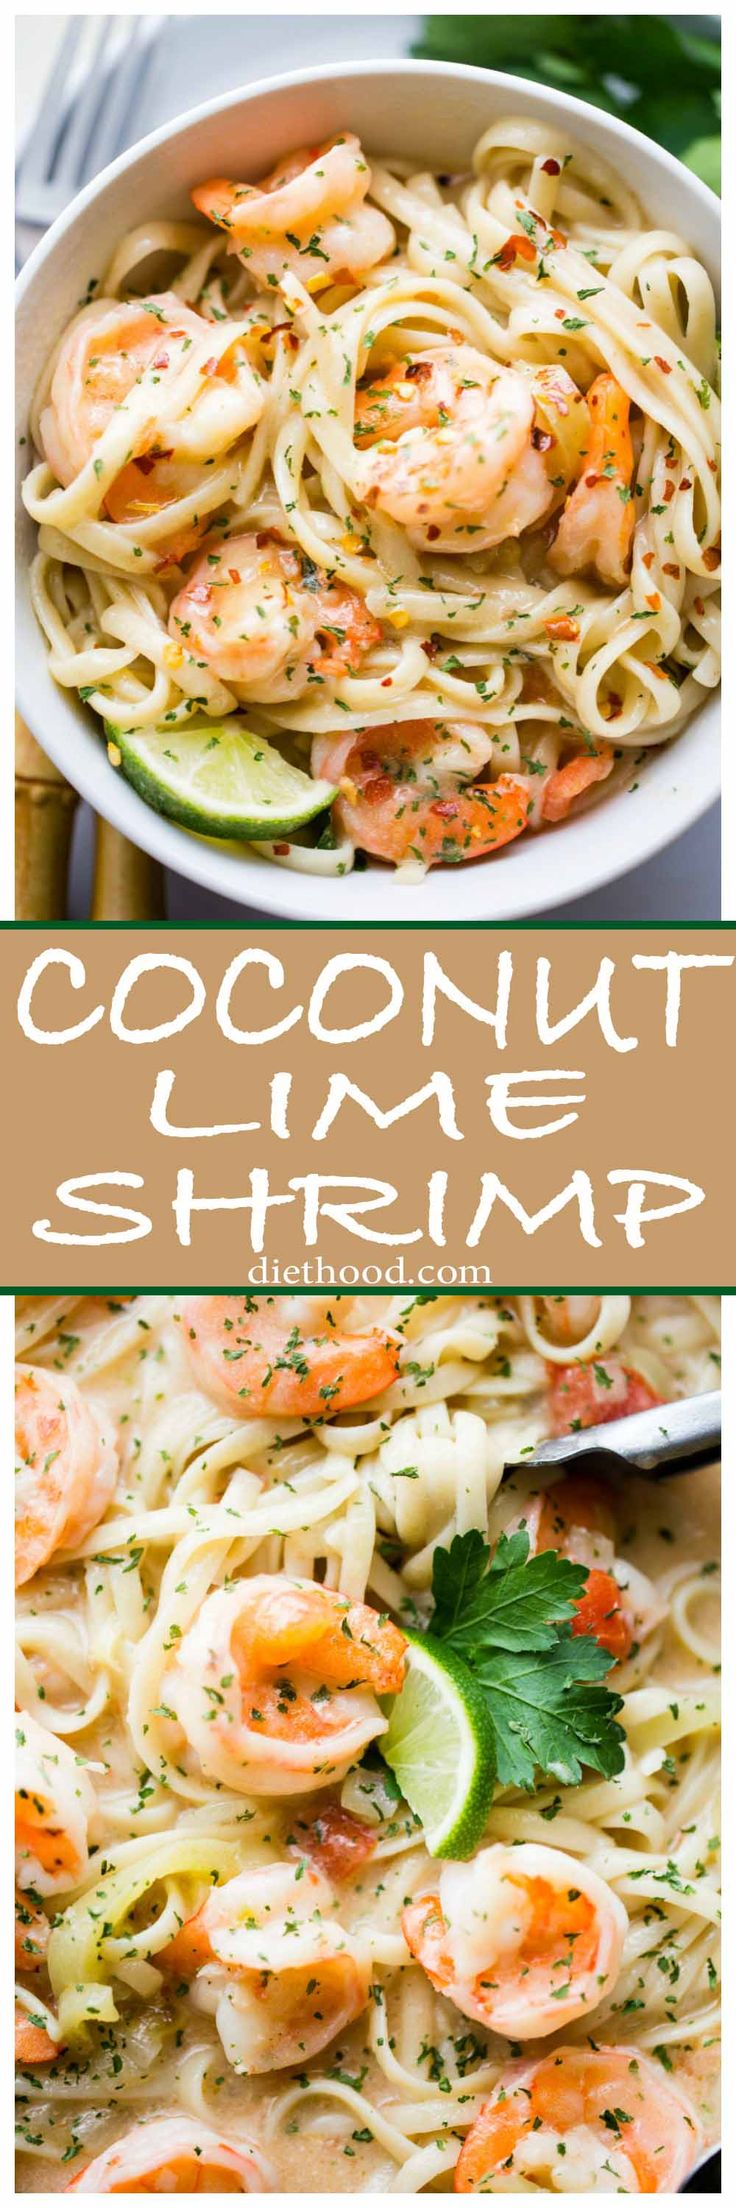 Coconut Lime Shrimp - Deliciously creamy shrimp cooked in an amazing coconut lime sauce with tomatoes and peppers, and served over noodles or rice. 6 SP